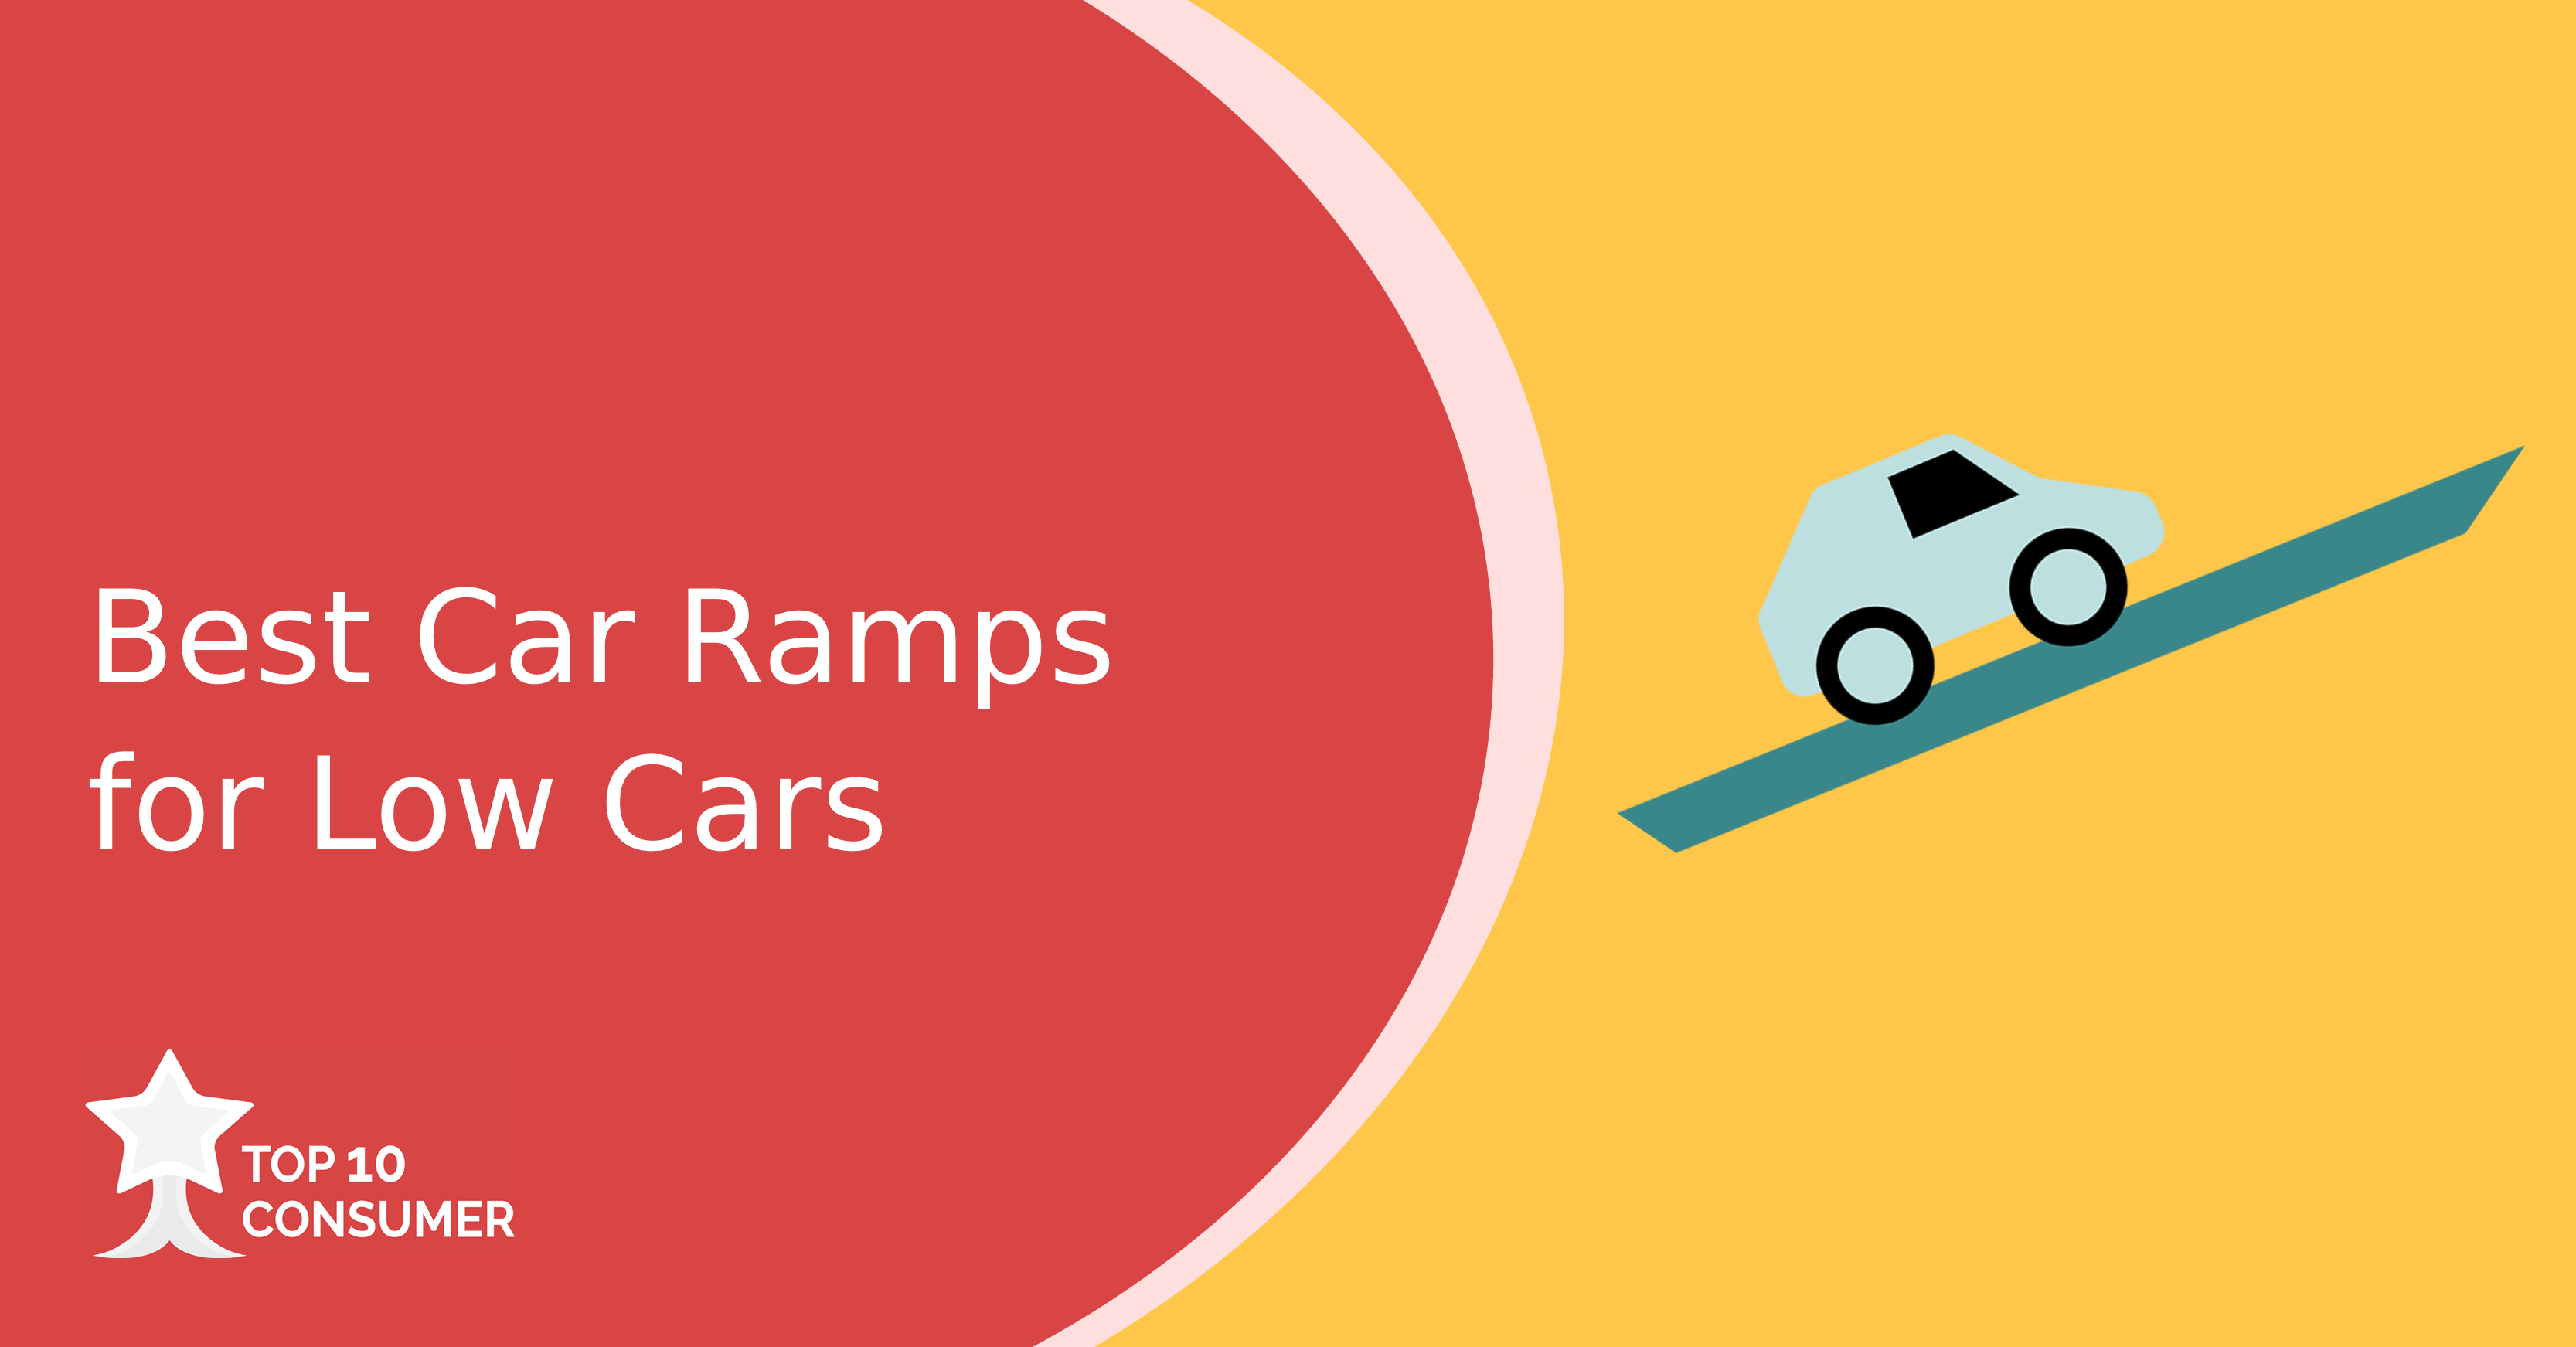 Best Car Ramps for Low Cars